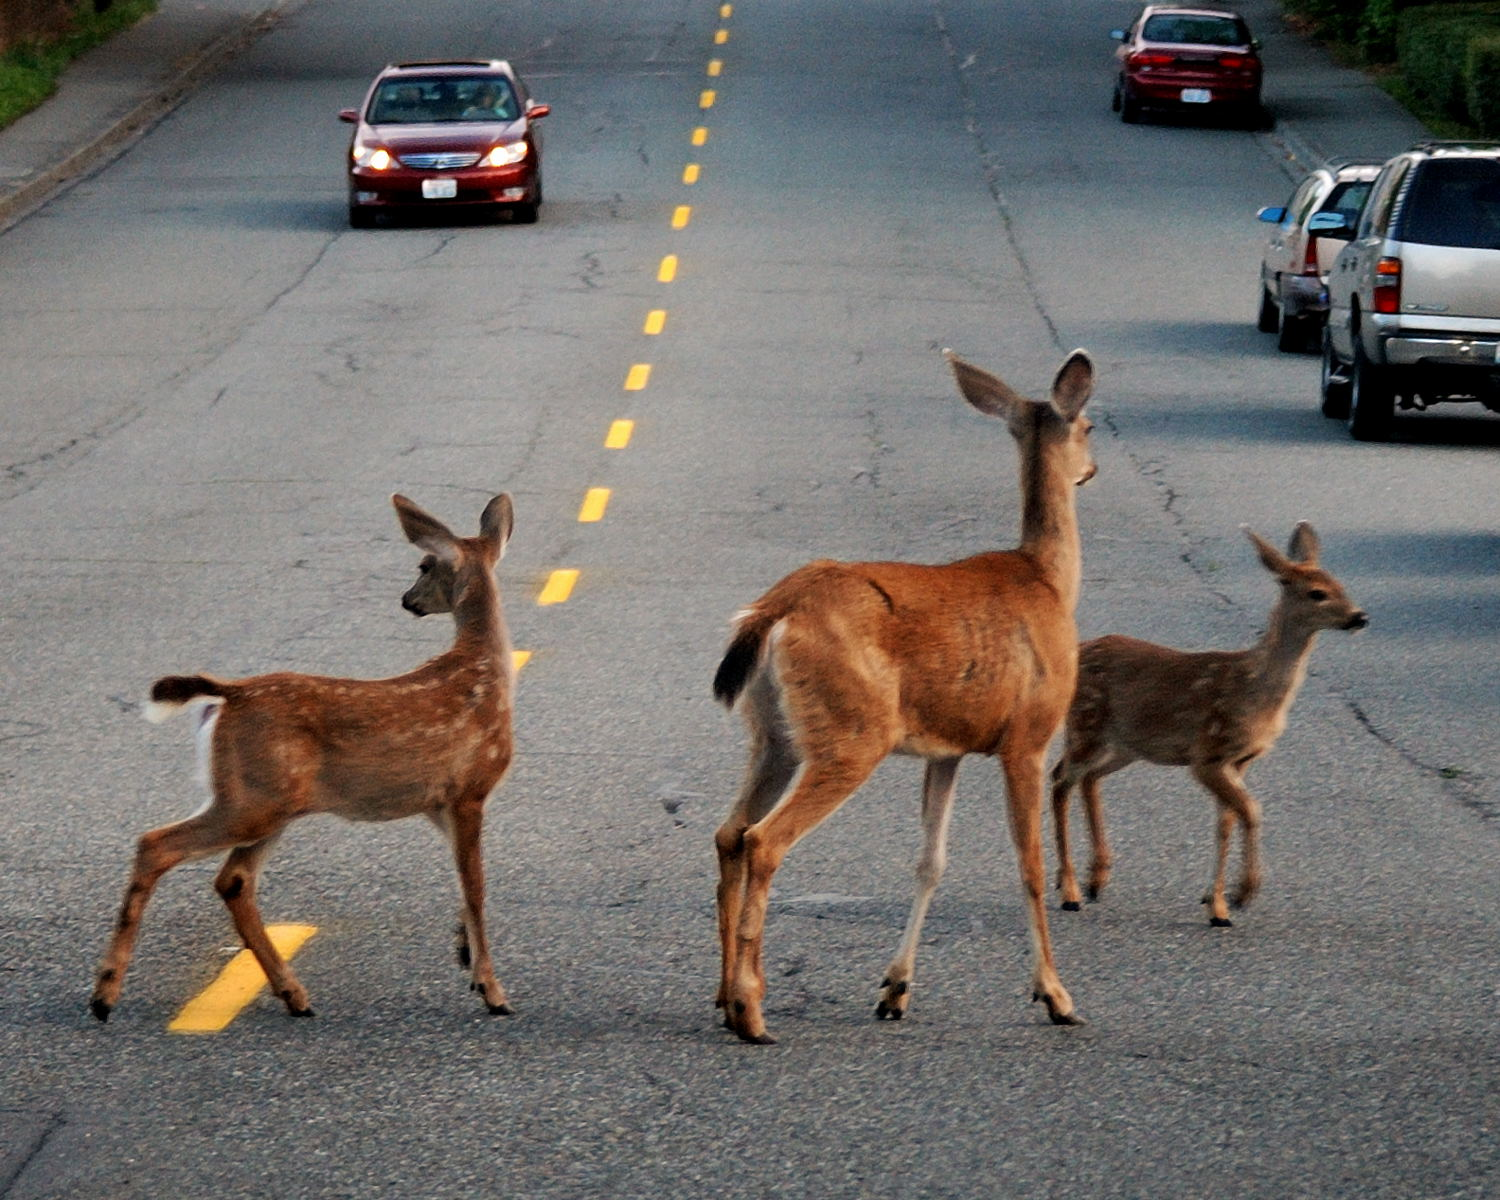 In Missouri alone there were over 4,000 vehicular accidents involving deer.